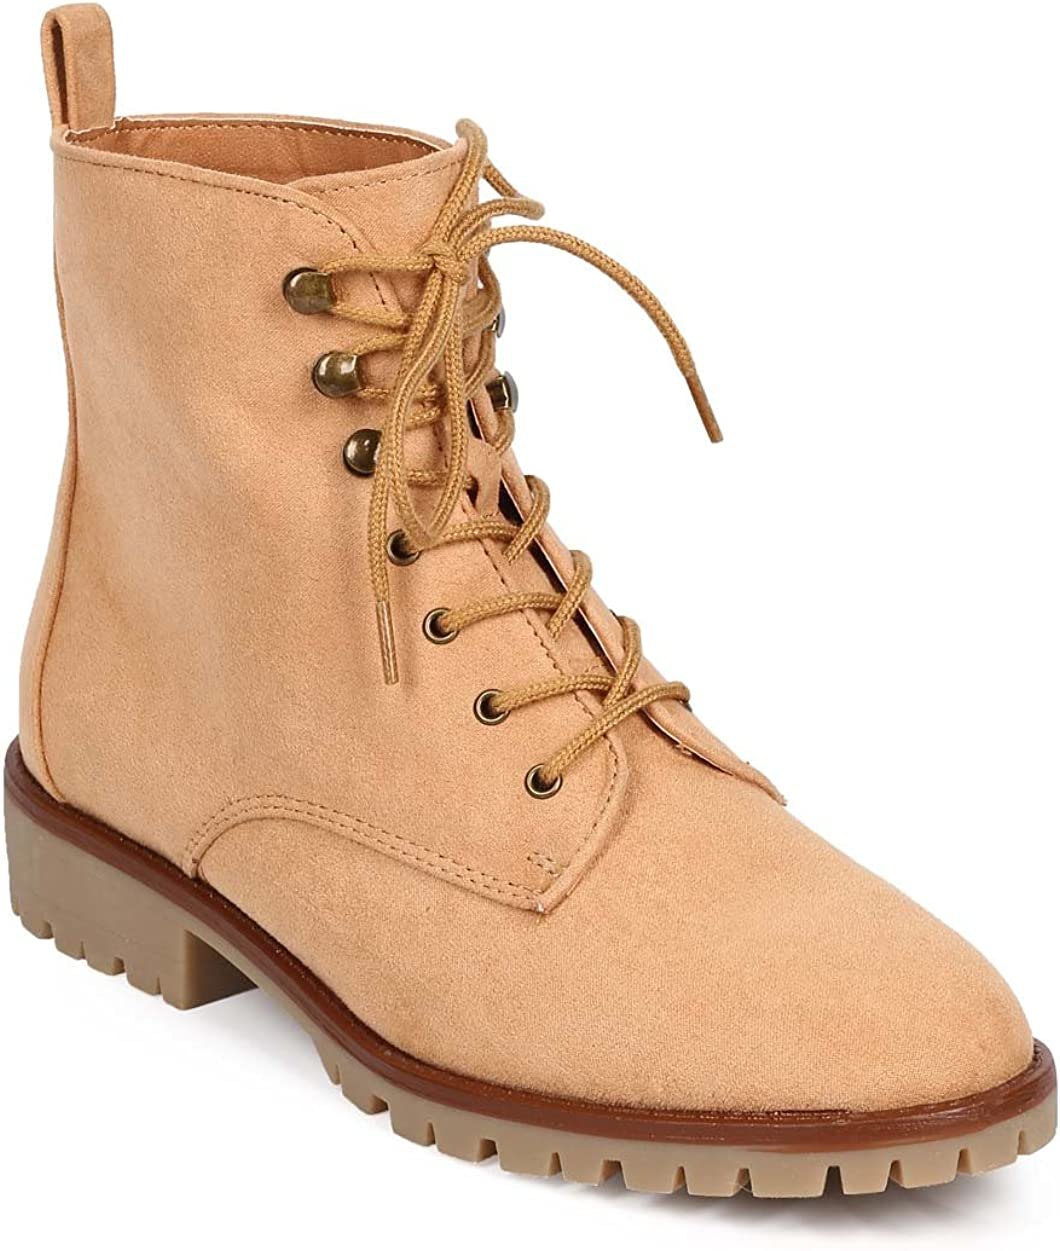 Qupid Women Suede Almond Toe Lace Up Tailored Combat Boot DC88